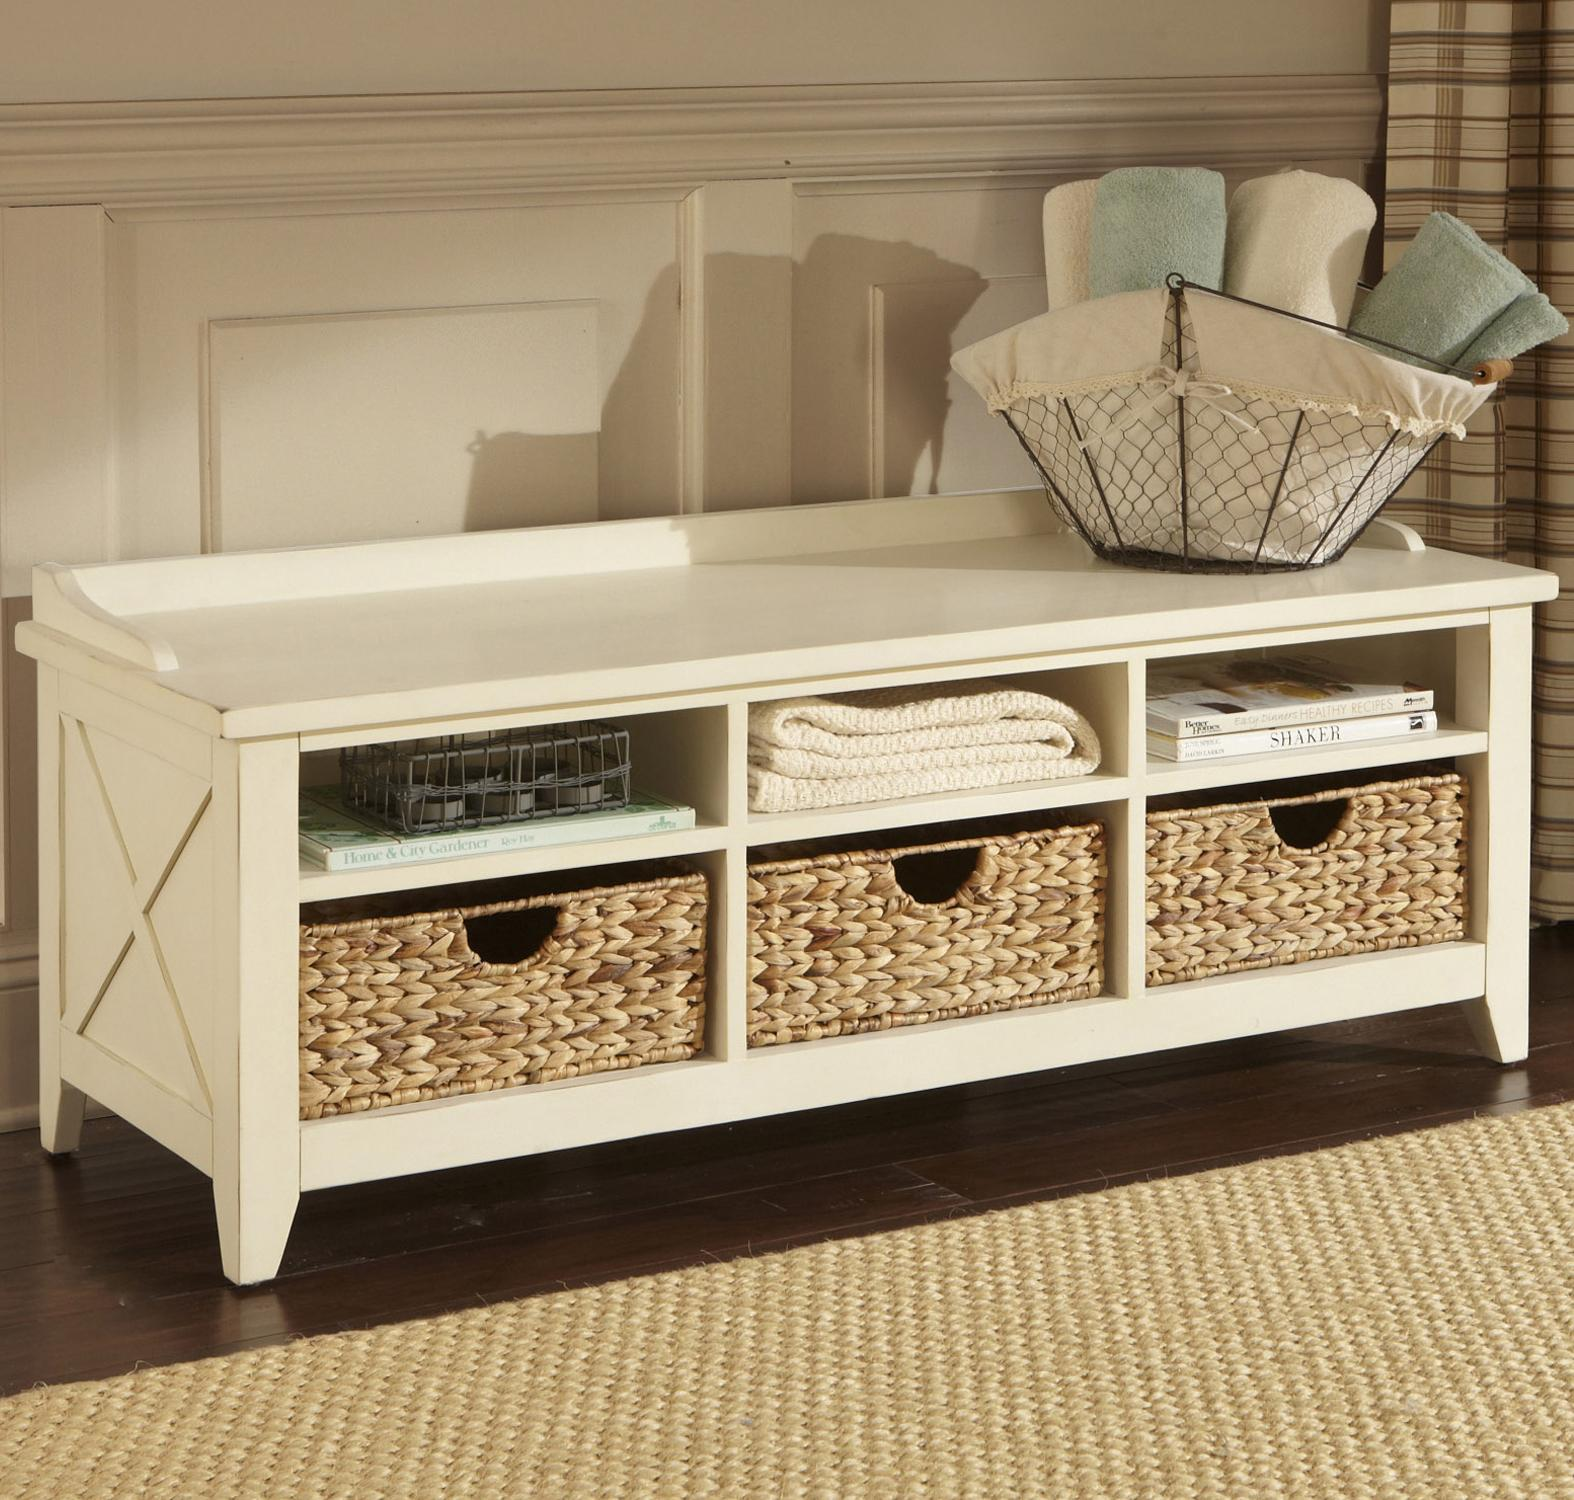 Liberty Furniture Hearthstone Cubby Storage Bench - Item Number 282-OT47 & Liberty Furniture Hearthstone 282-OT47 Cubby Storage Entryway Bench ...